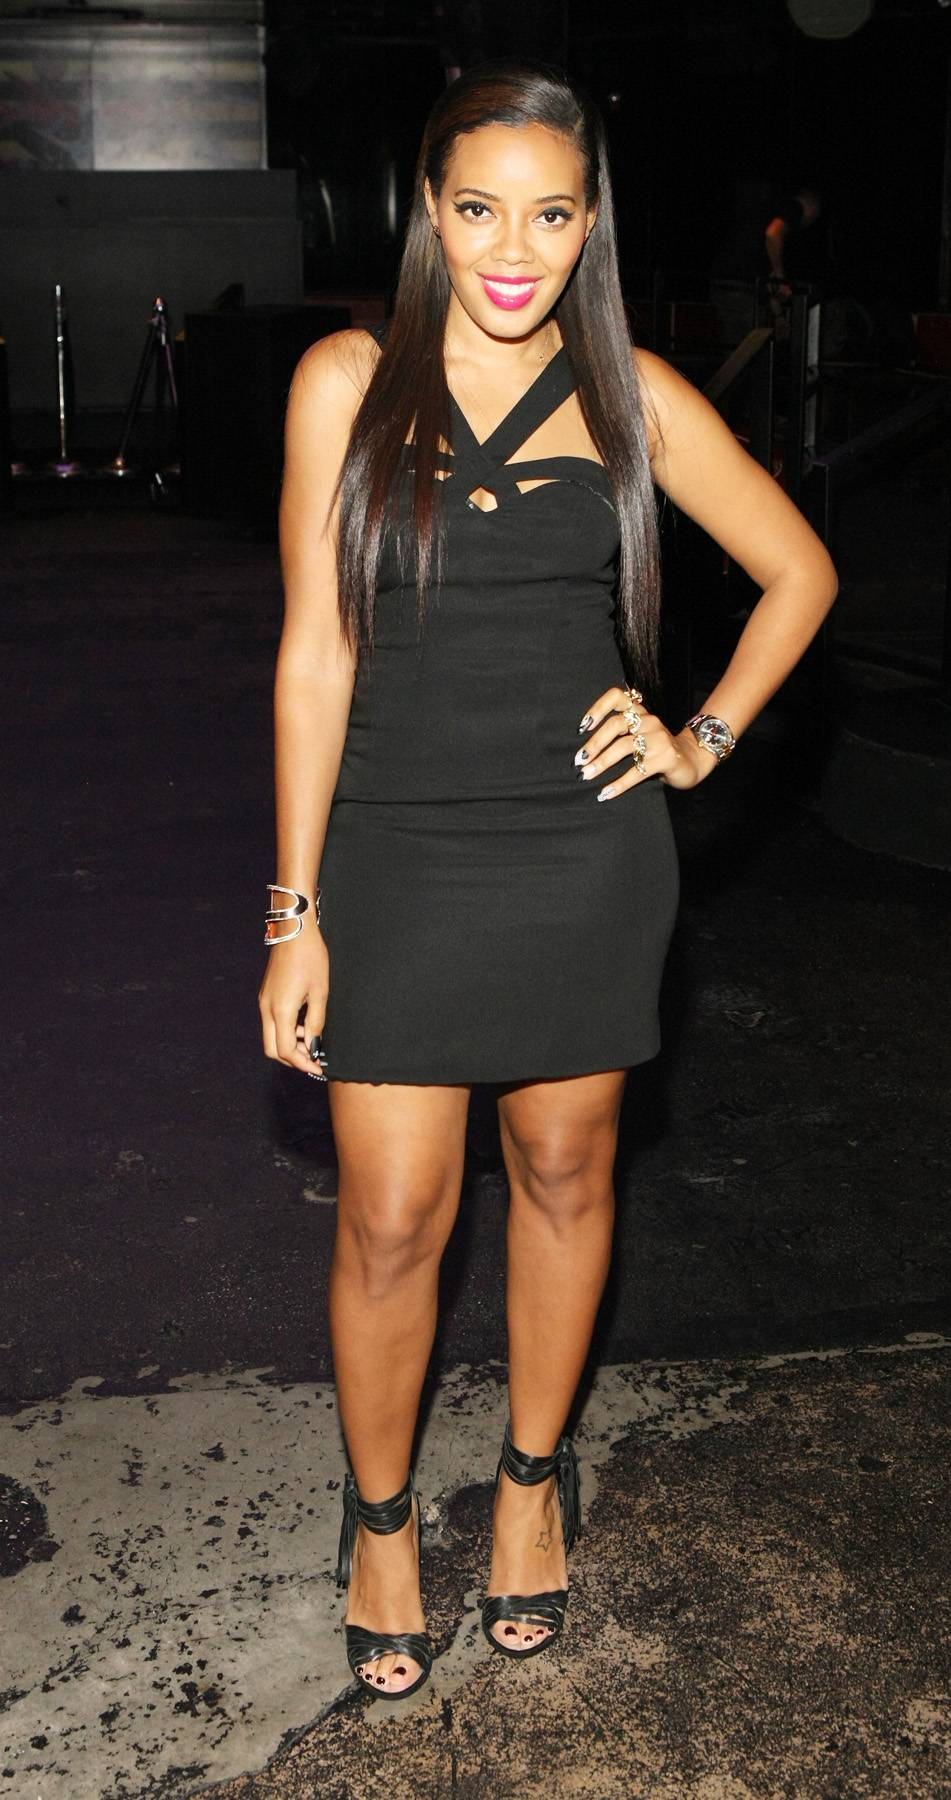 Pose for the Camera - Host Angela Simmons gives us a little pose while on 106. (Photo: Bennett Raglin/BET/Getty Images for BET)